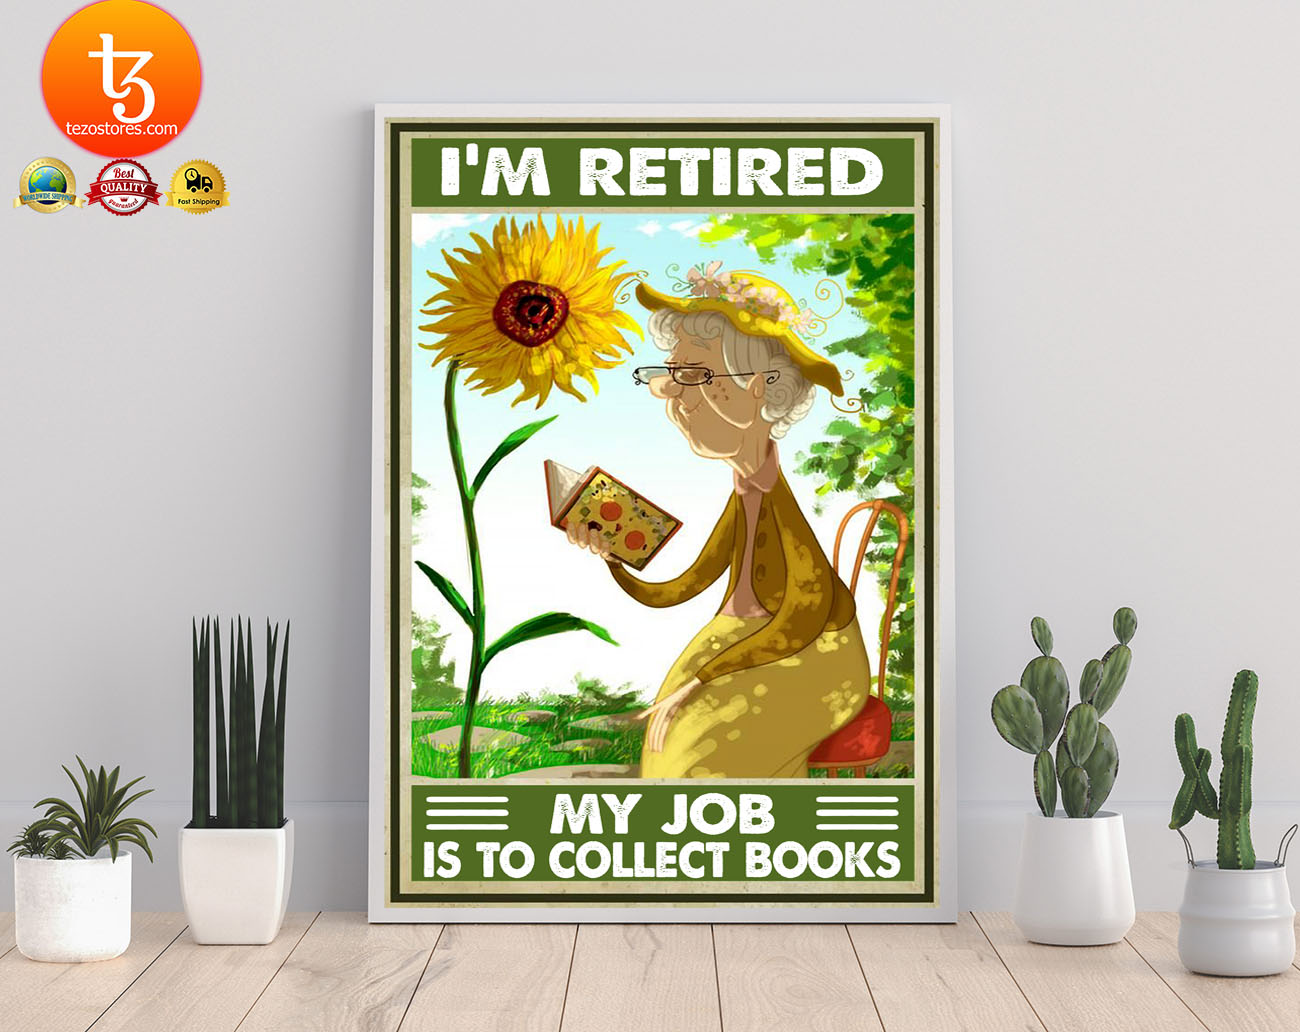 I'm retired my job is to collect books poster 21